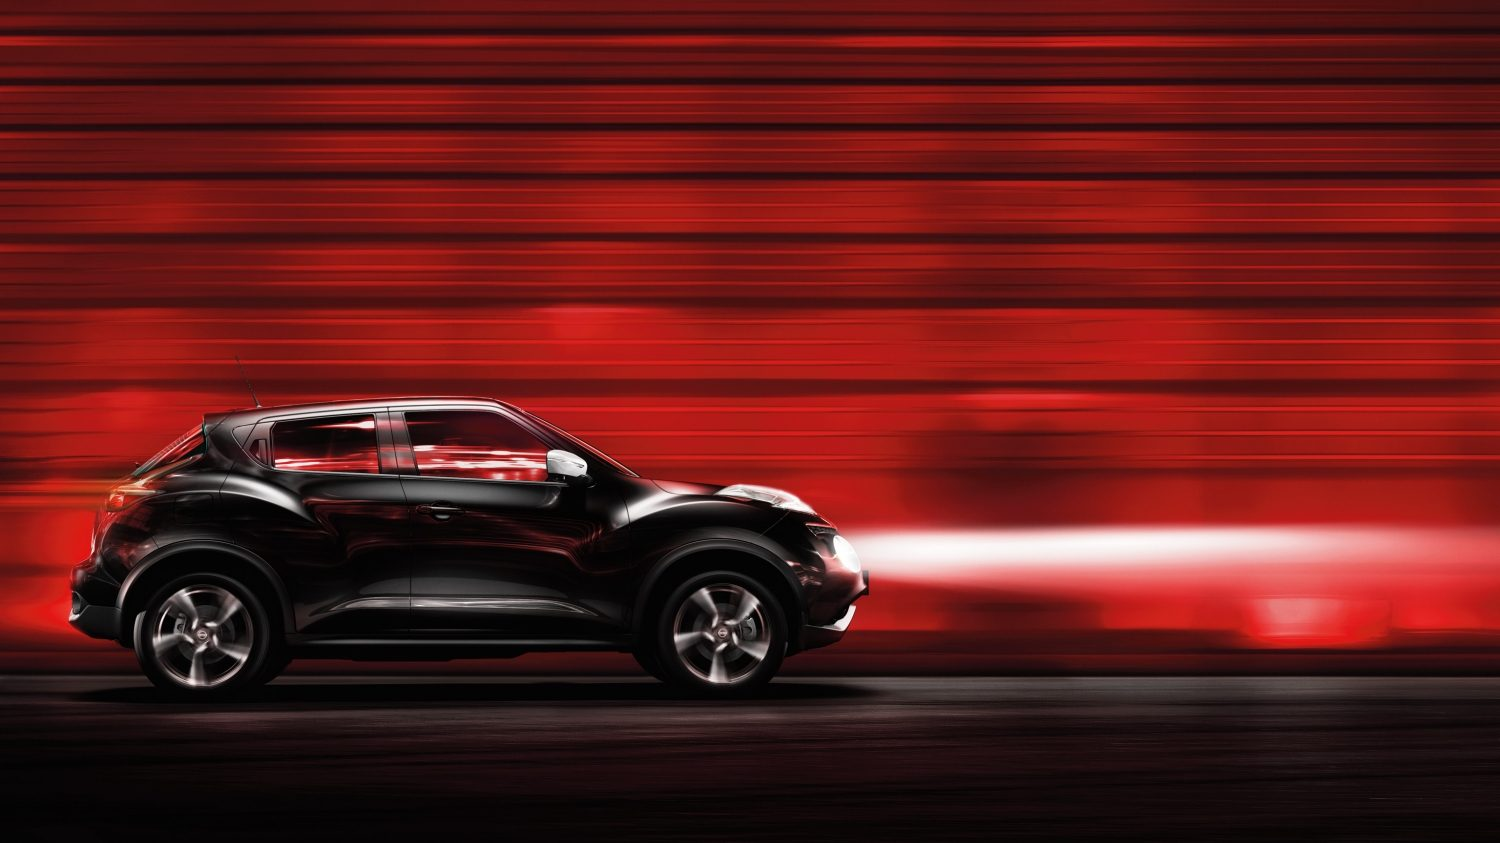 Nissan Juke black - profile view